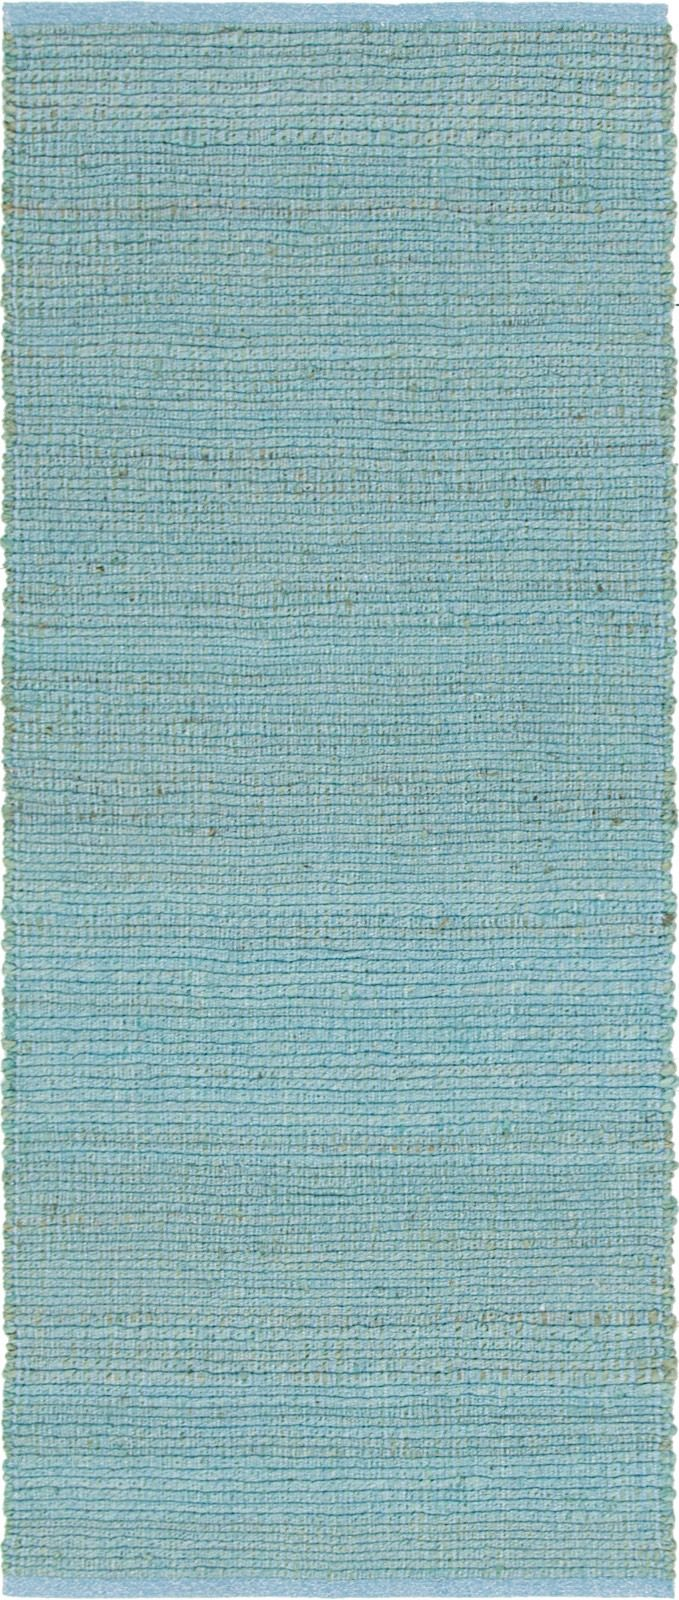 rugpal soulful solid/striped area rug collection